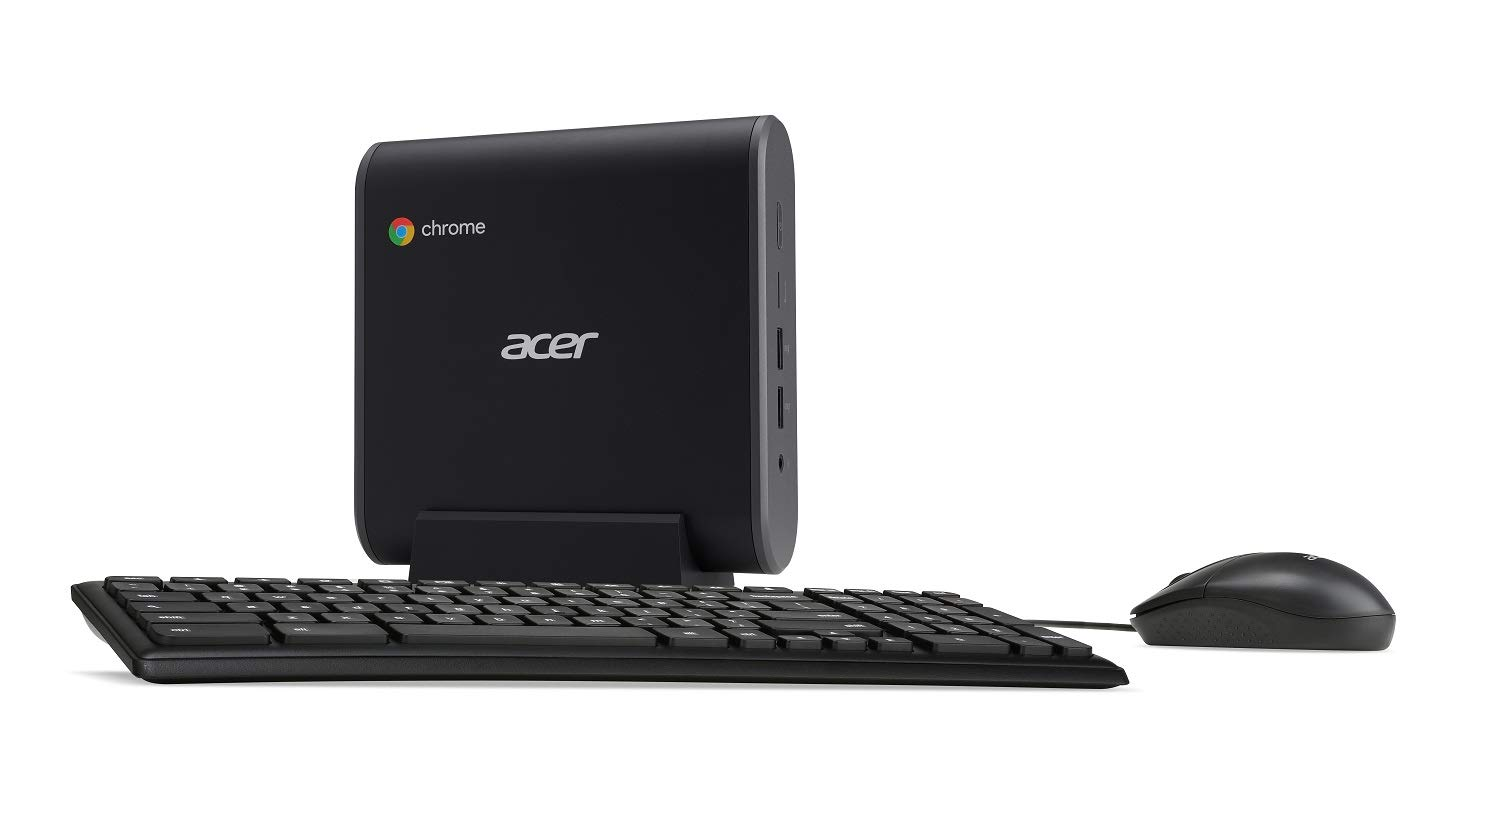 Acer Chromebox CXI3 8th Gen Intel Core i7